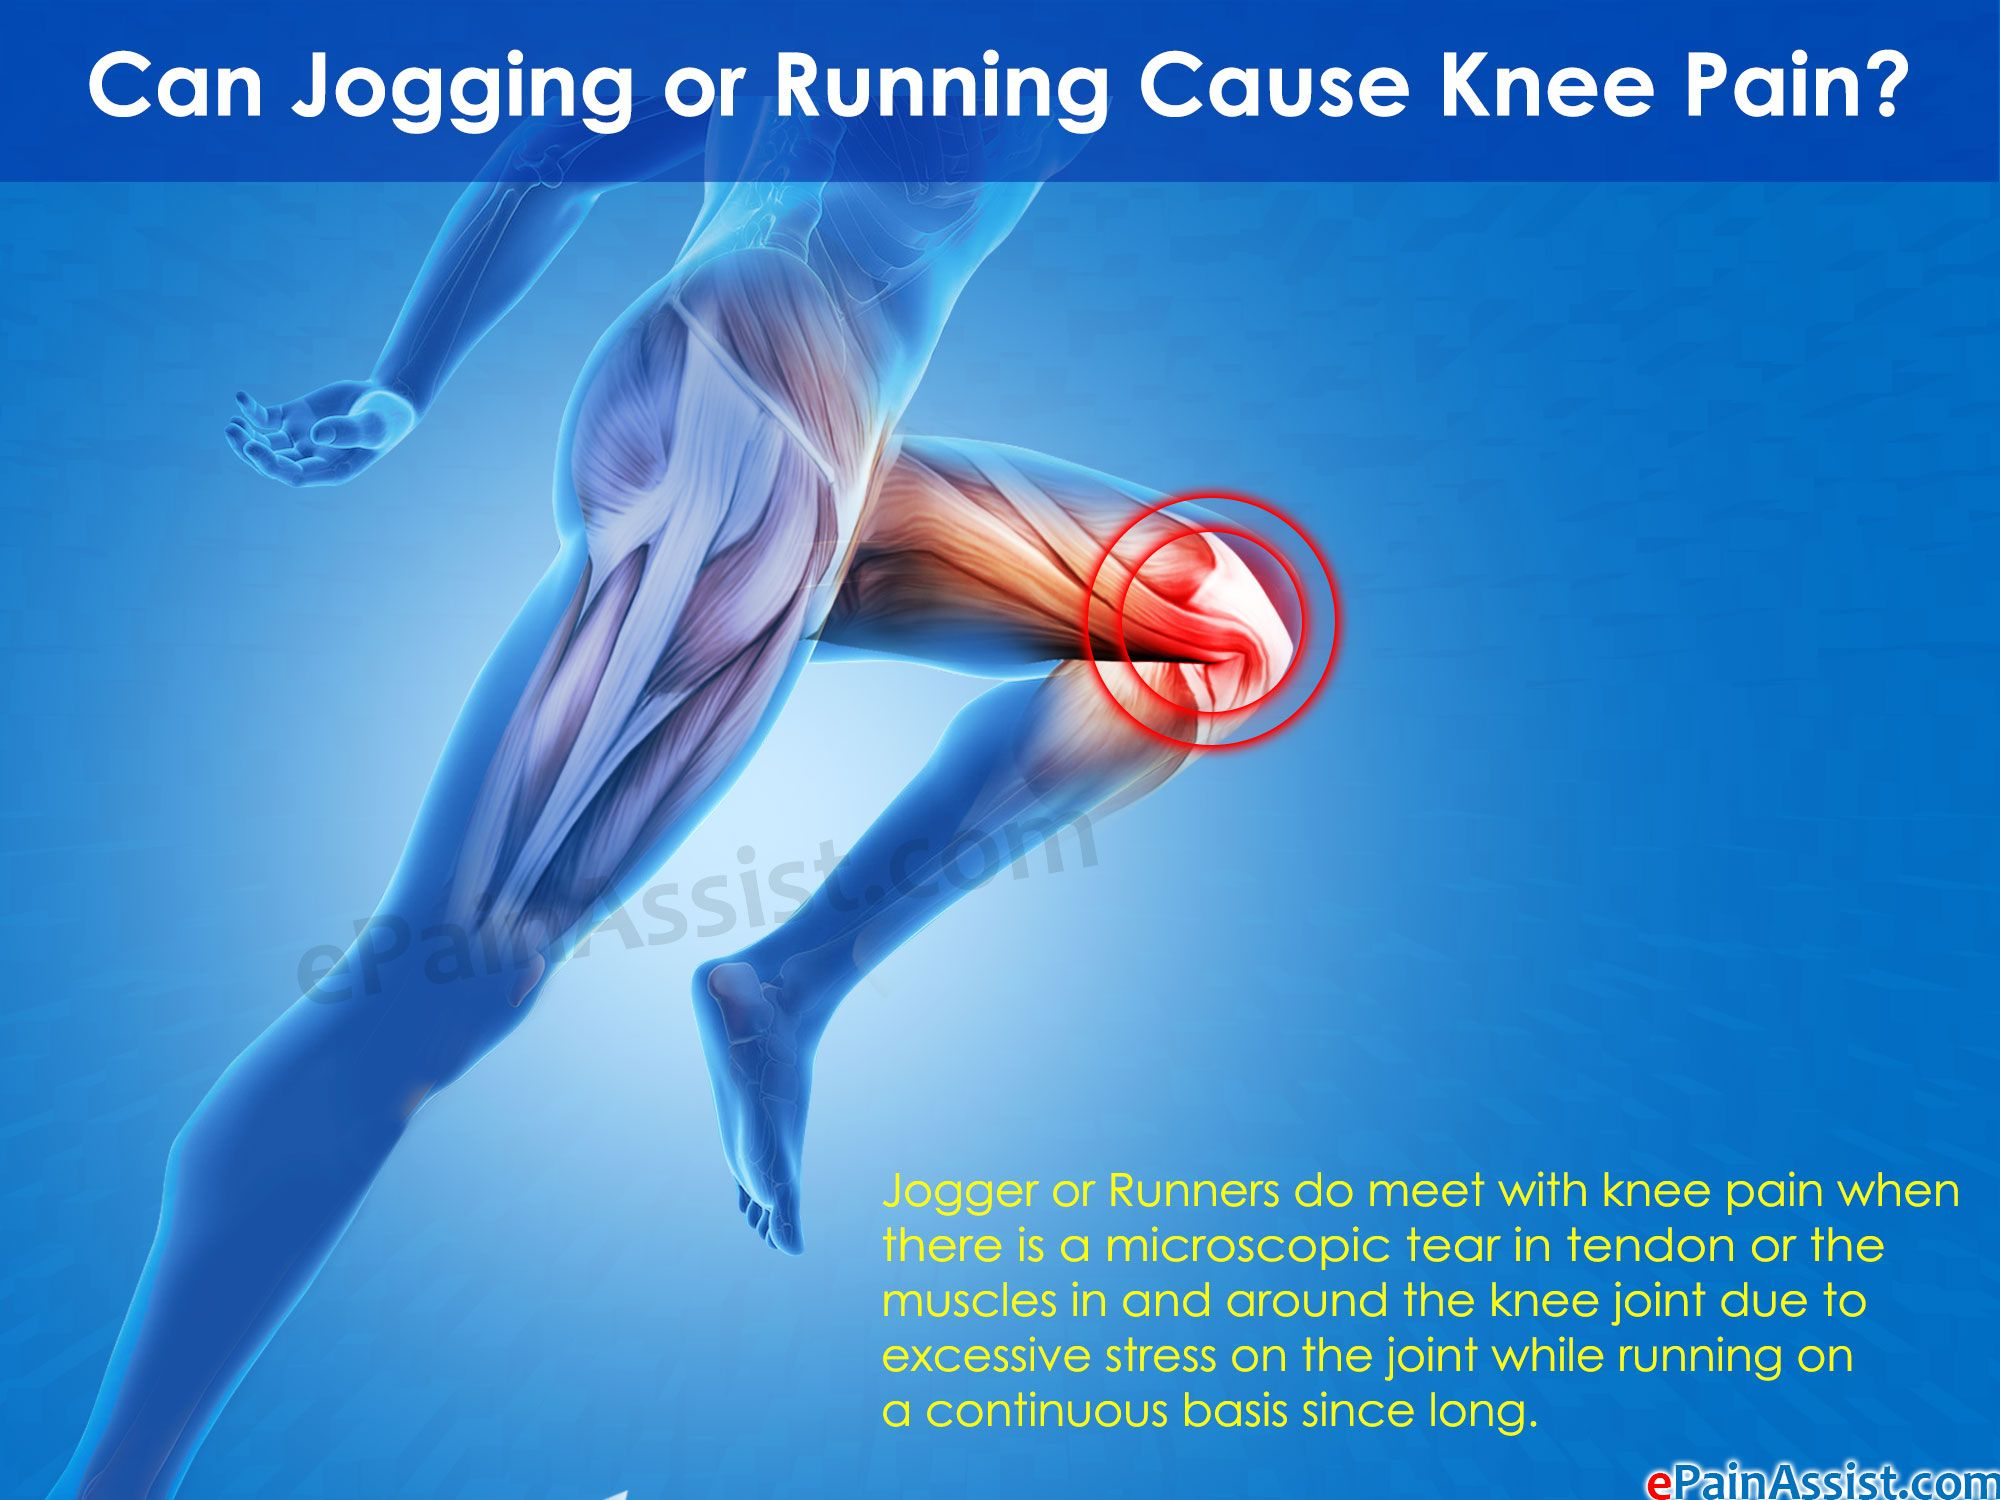 Knee pain diagnosis test - Read How Knee Pain Is Caused From Jogging Or Running Read Its Symptoms Treatment